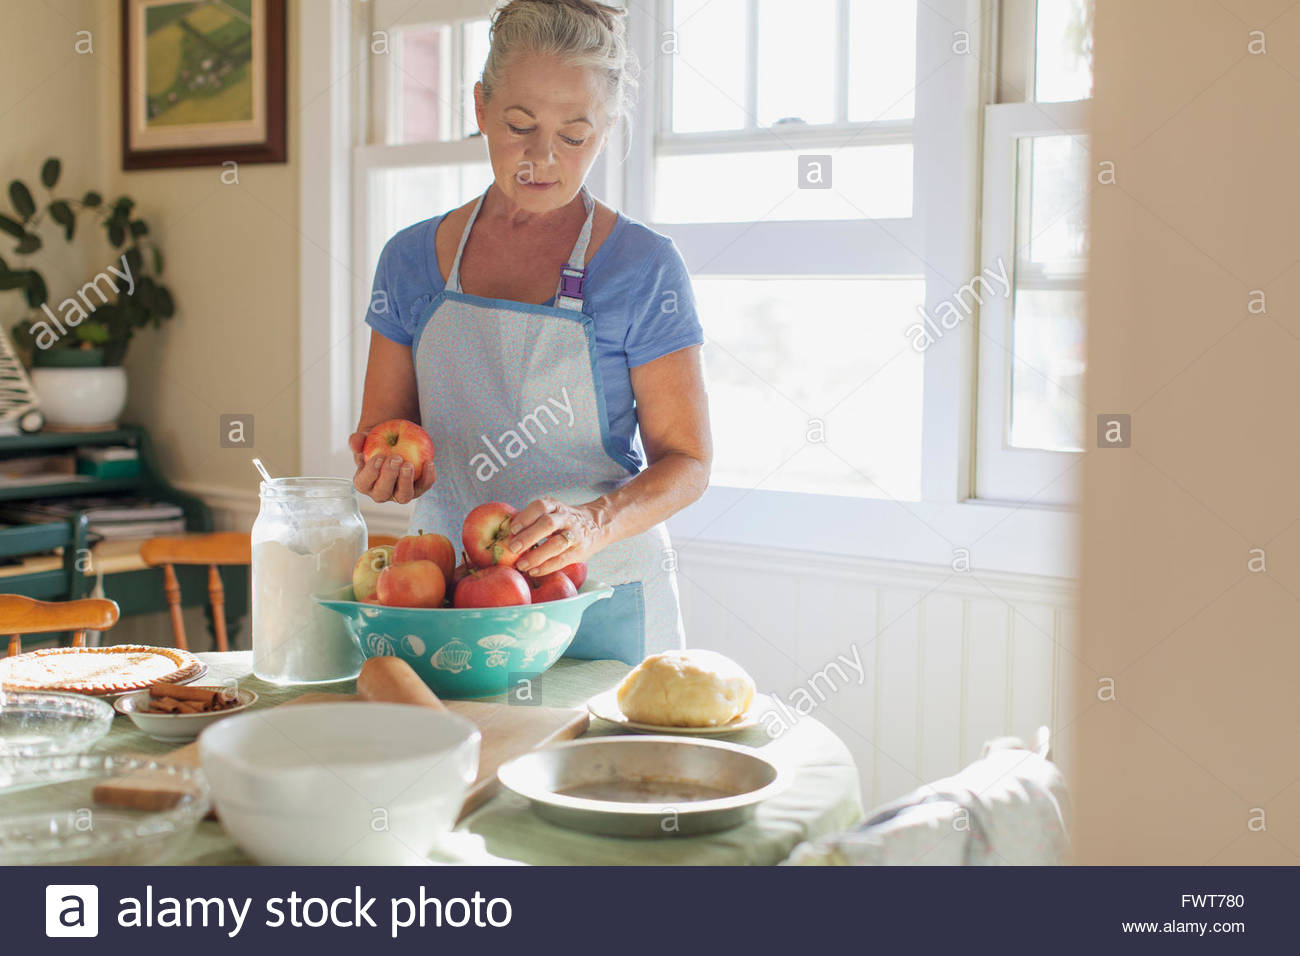 Mature woman in kitchen with apples for pie making. - Stock Image